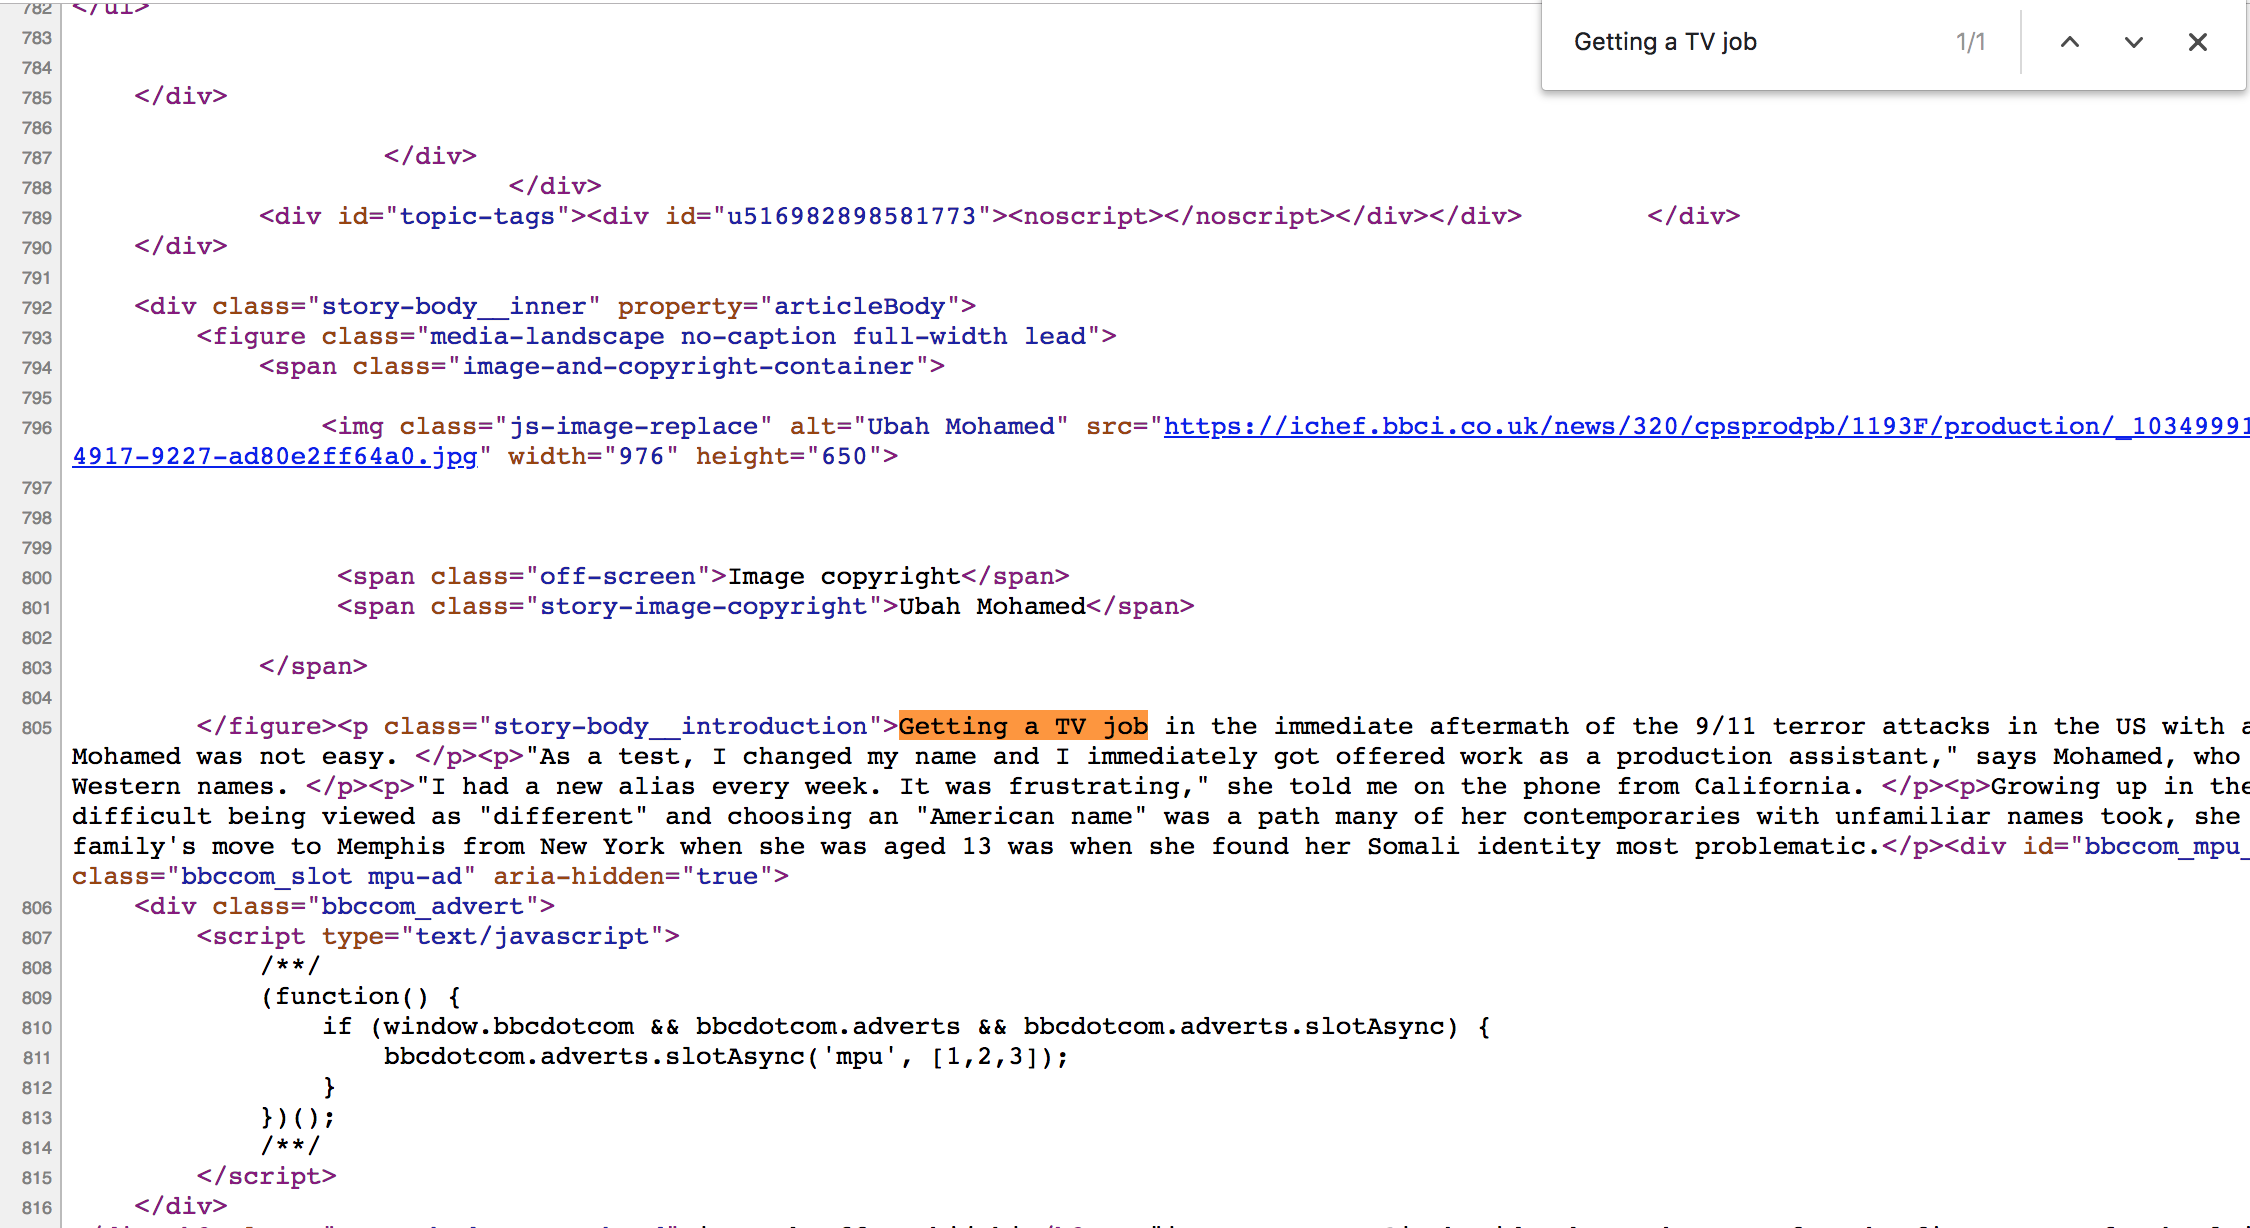 Image 2: Finding text in the source code of a web page.